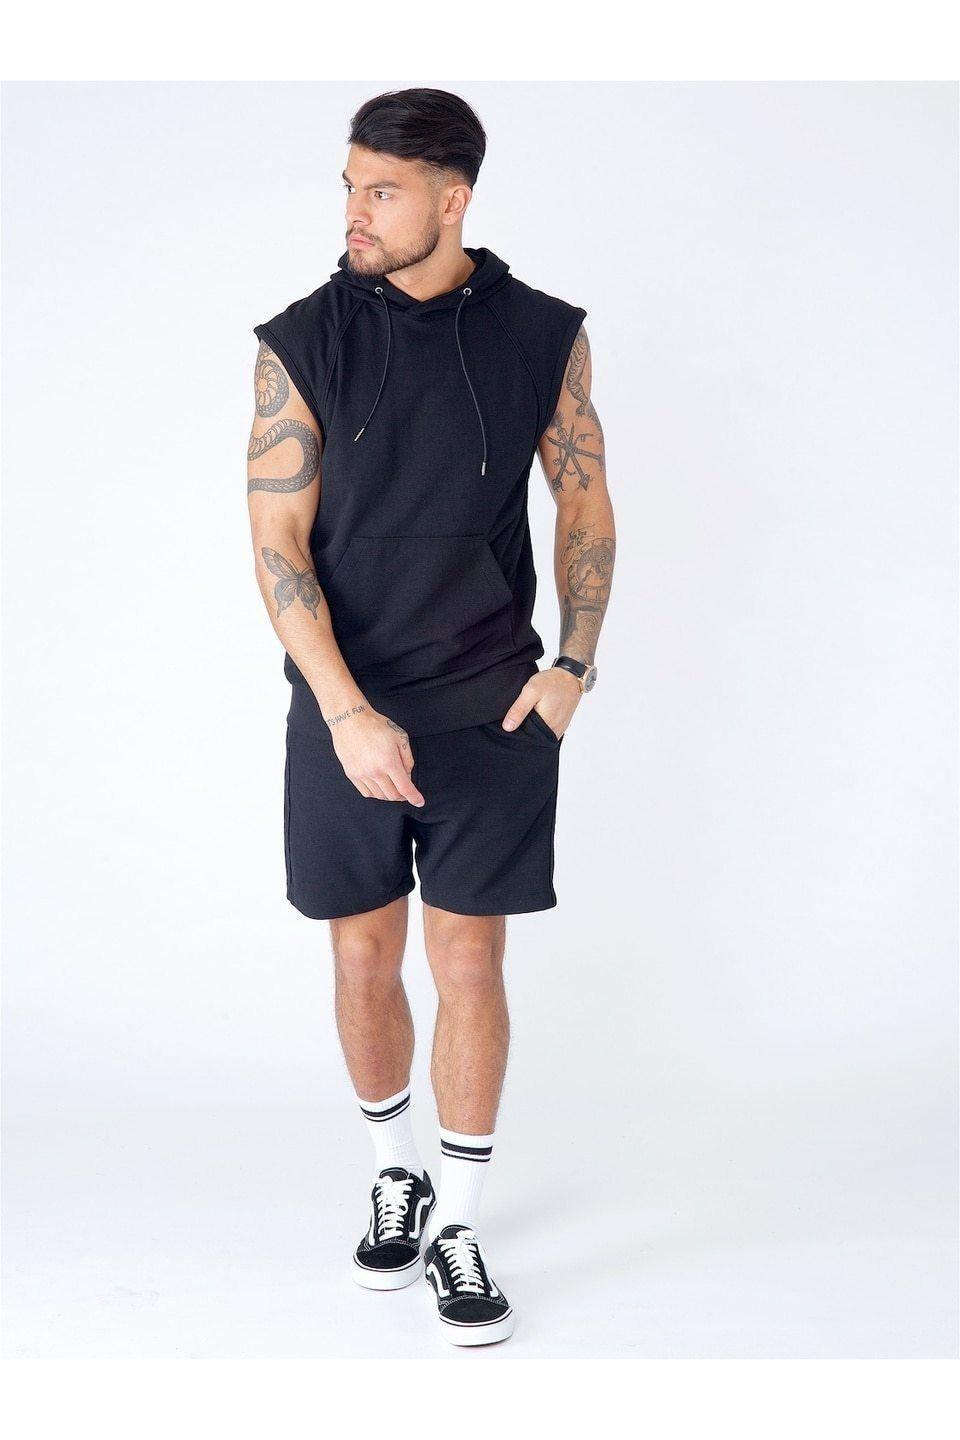 T-Shirts - Sleeveless Hoodie Black